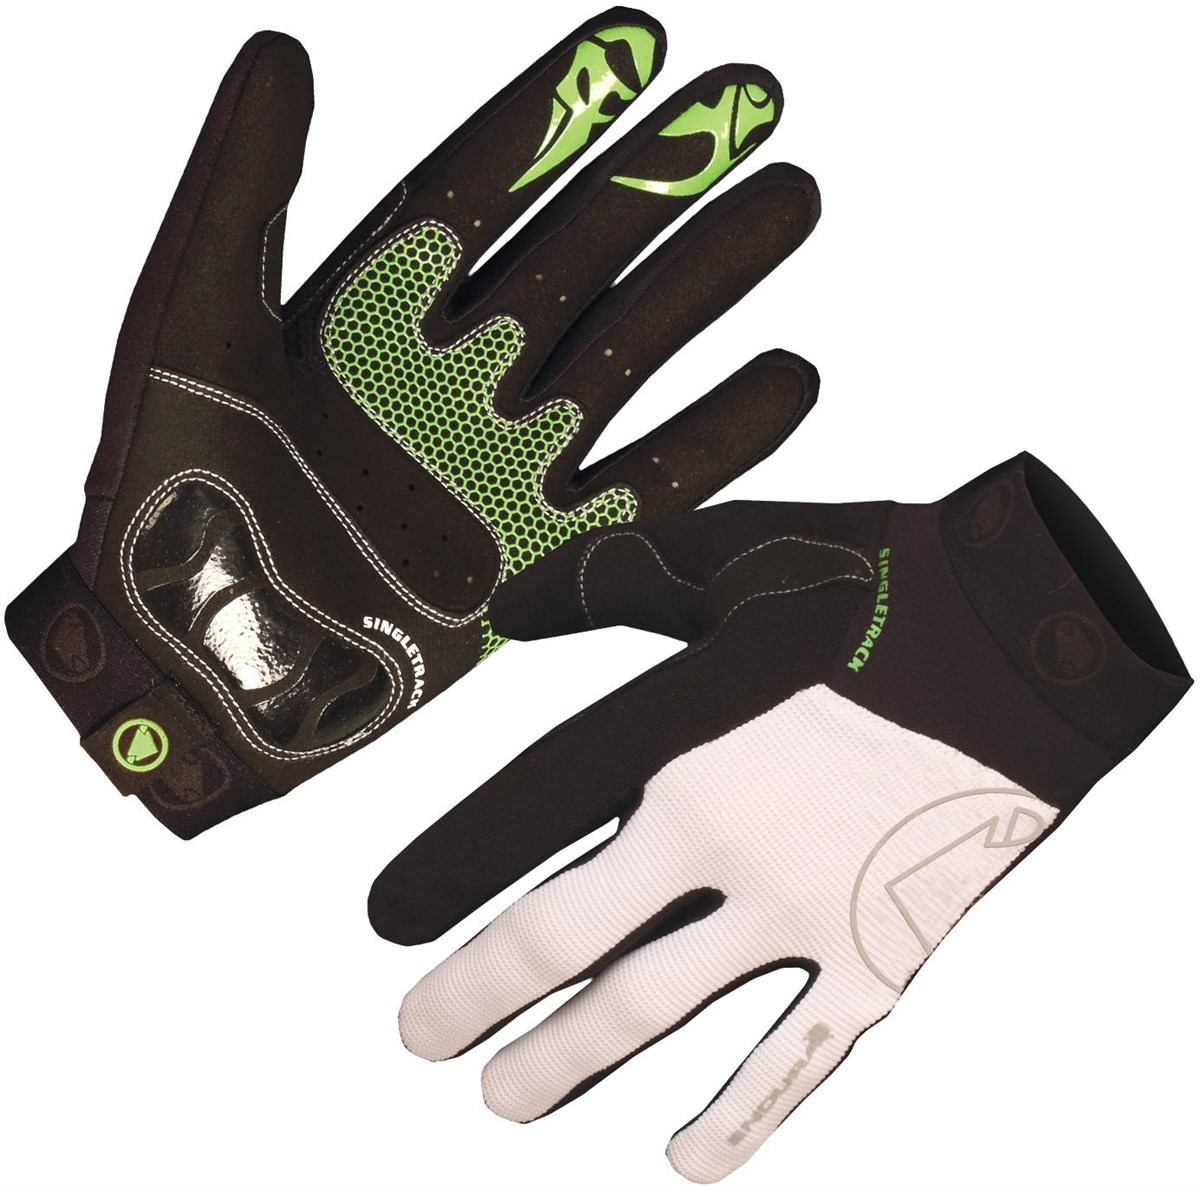 Endura - Singletrack | bike glove